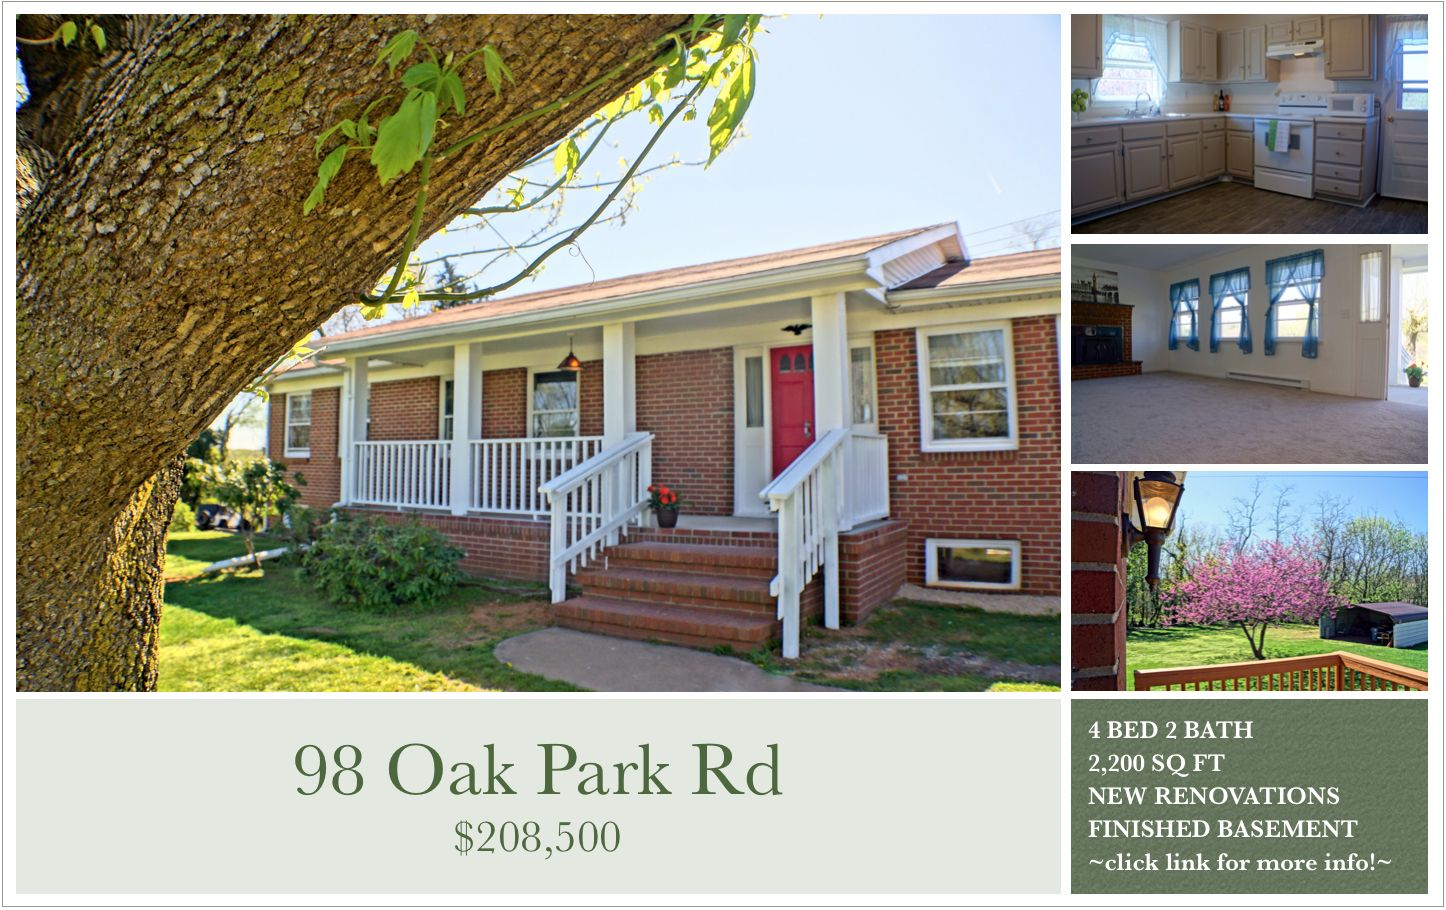 This Well Maintained Brick Home On A Full Basement Is Ready To